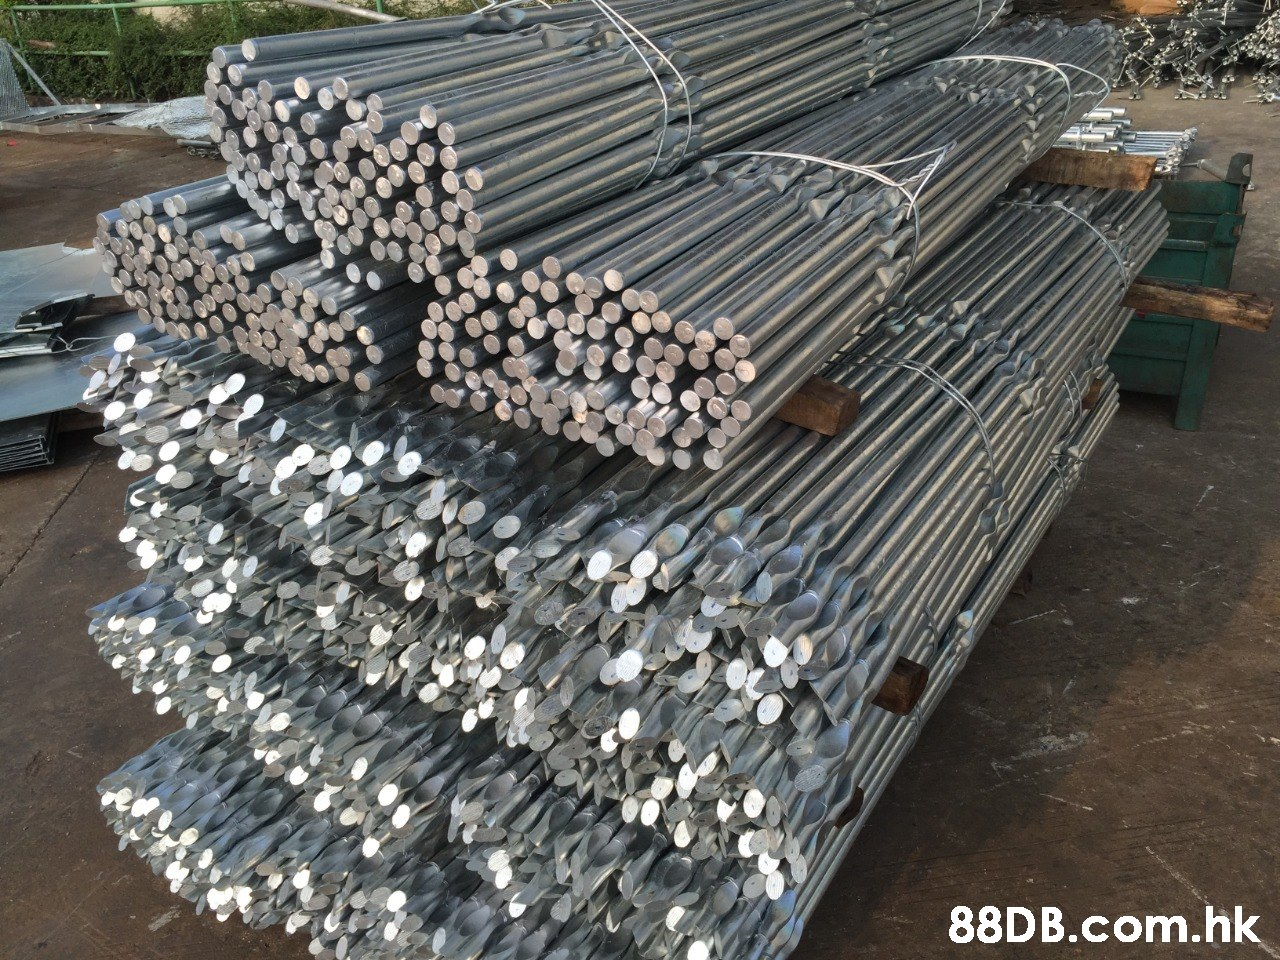 .hk  Metal,Iron,Steel,Steel casing pipe,Logging